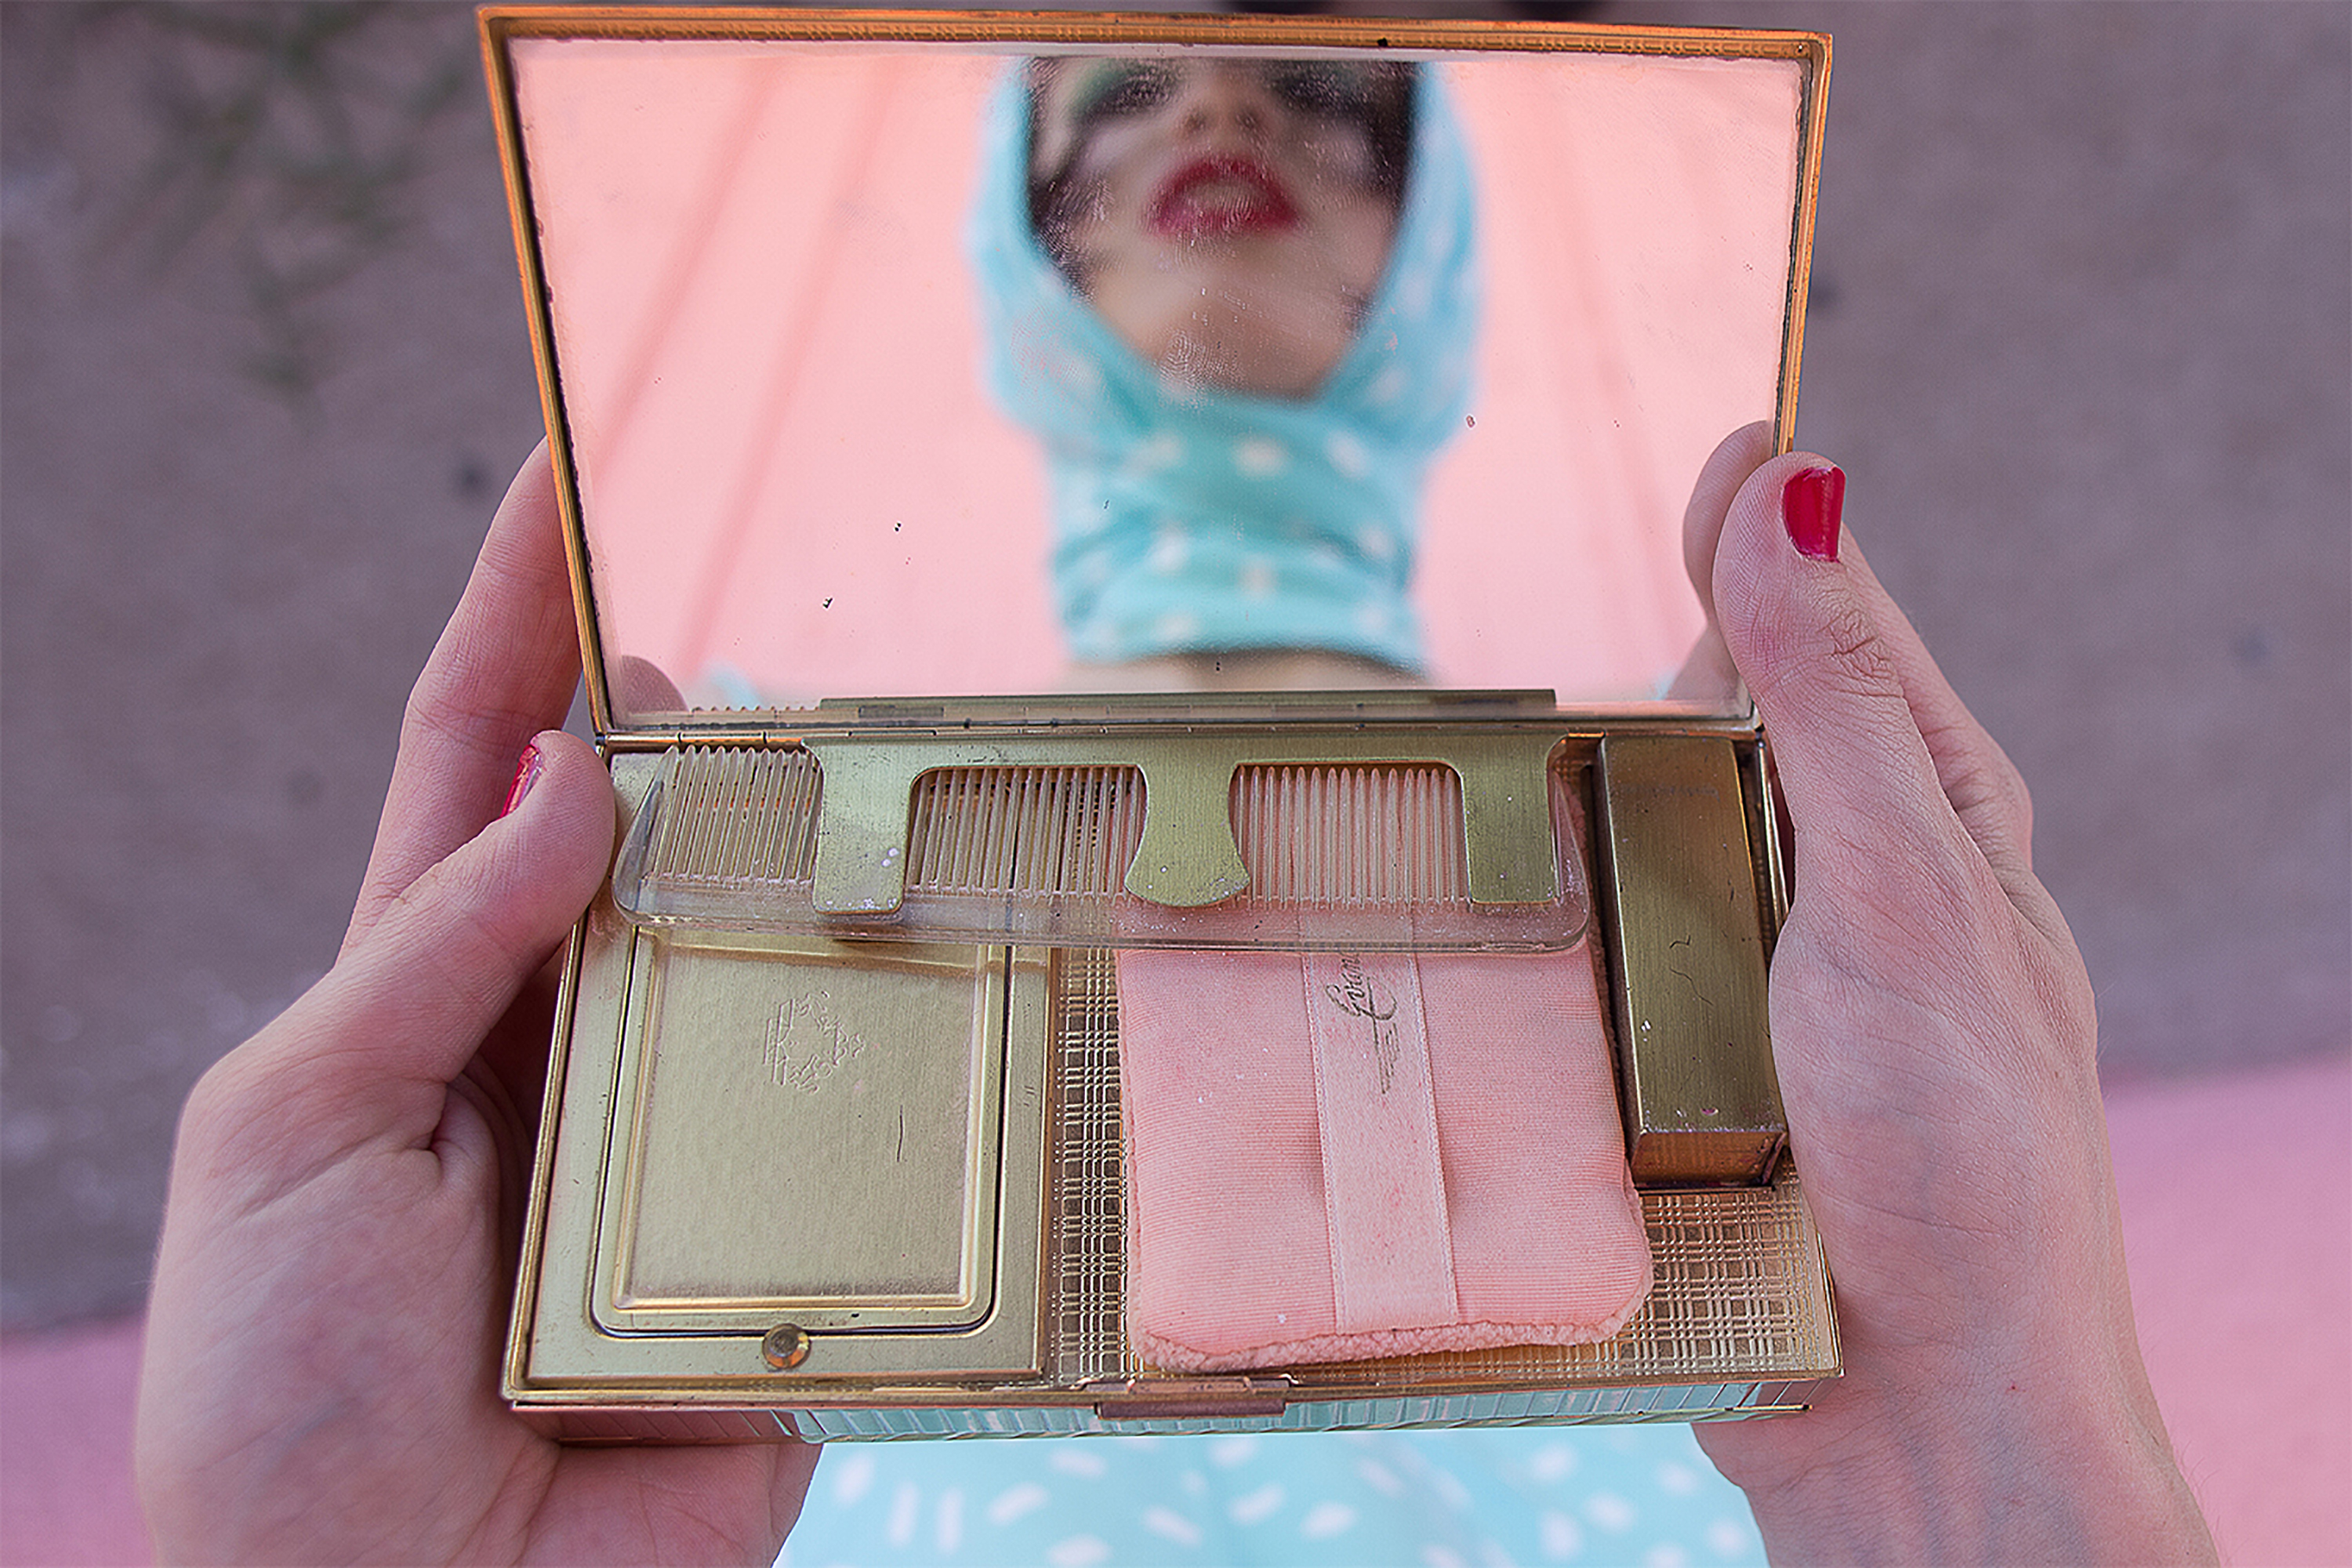 Woman's reflection in a vintage makeup mirror